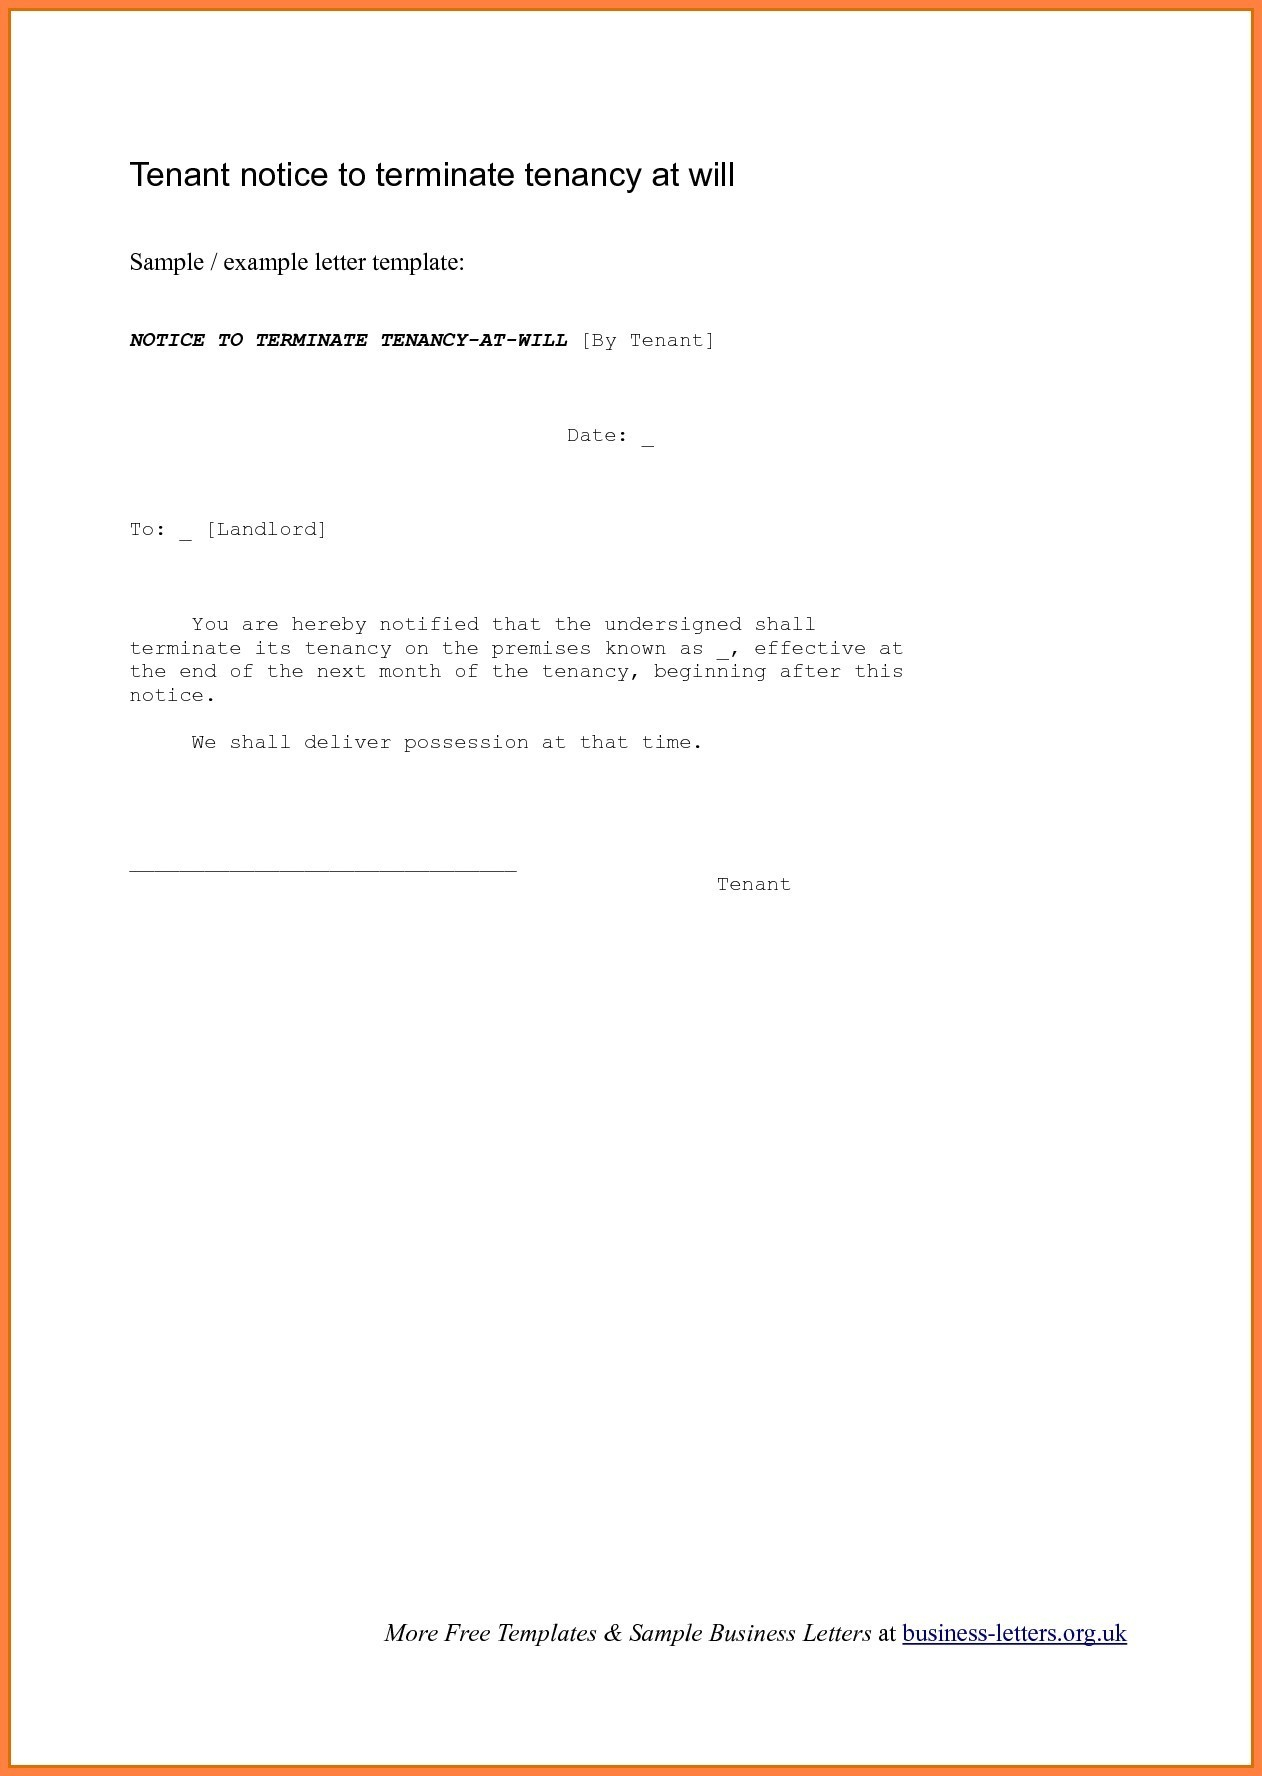 Free Resignation Letter Template Microsoft Word Download - Sample Resignation Letter format Download Best Gallery 9